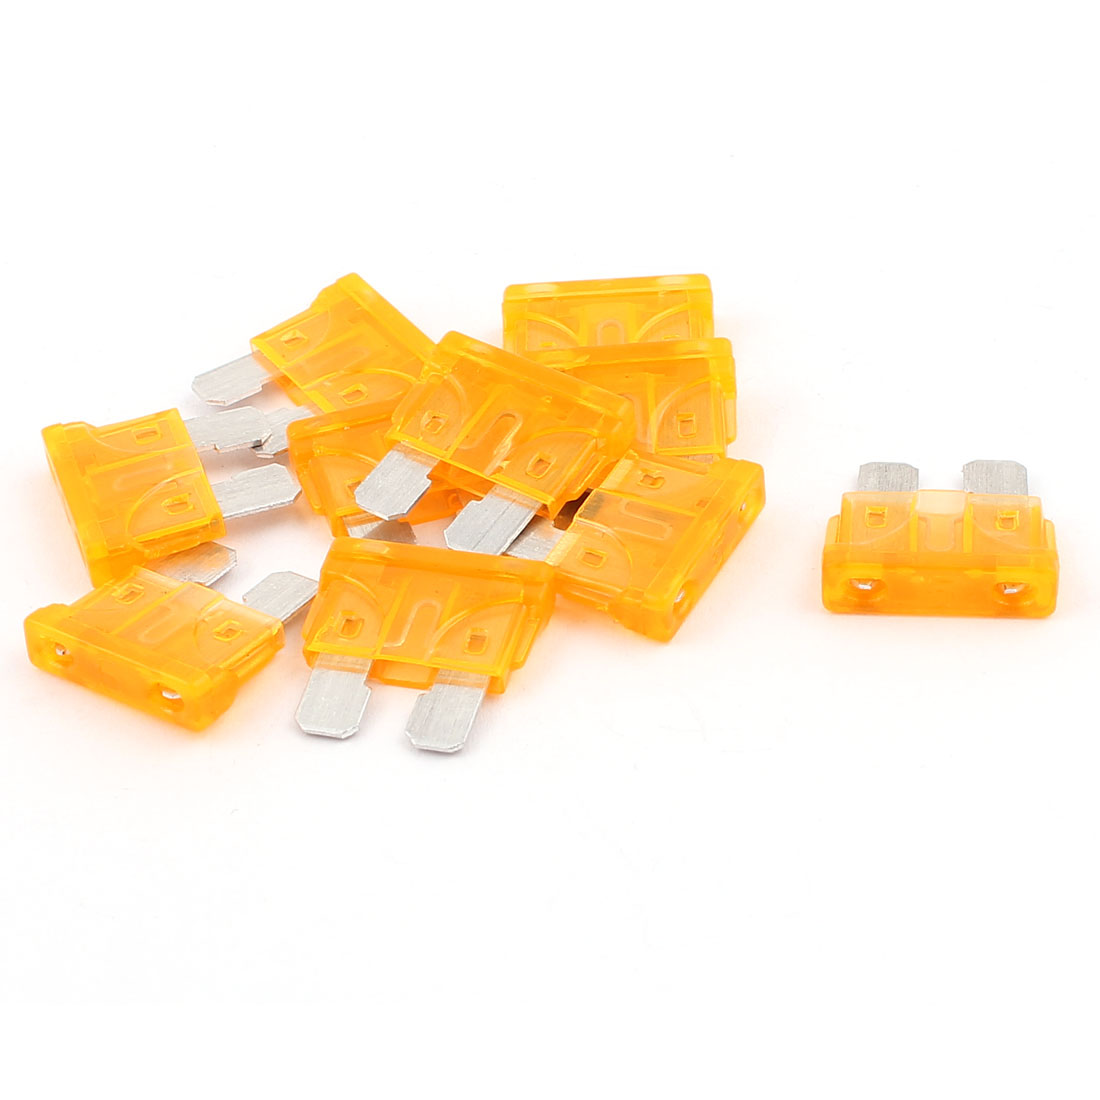 10pcs 5A Orange Plastic Housing Blade Fuse for Auto Car Truck Motorcycle SUV